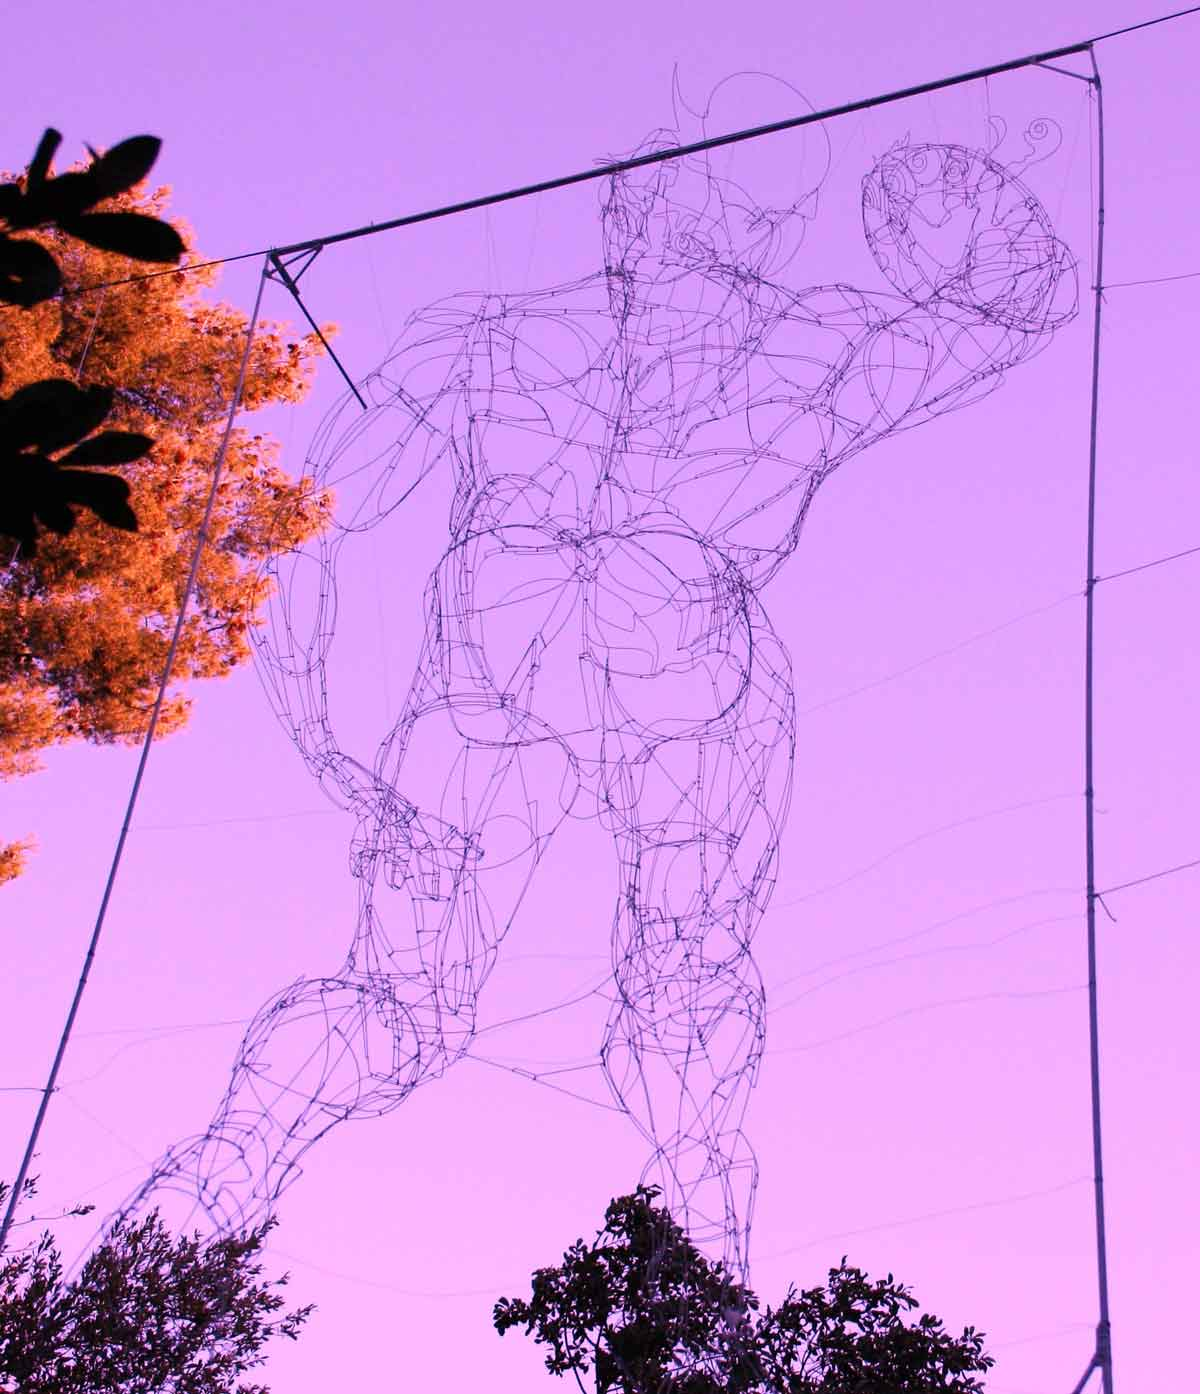 David scxulpture filaire - art suspendu - eDline - jardin Bagatelle Marseille